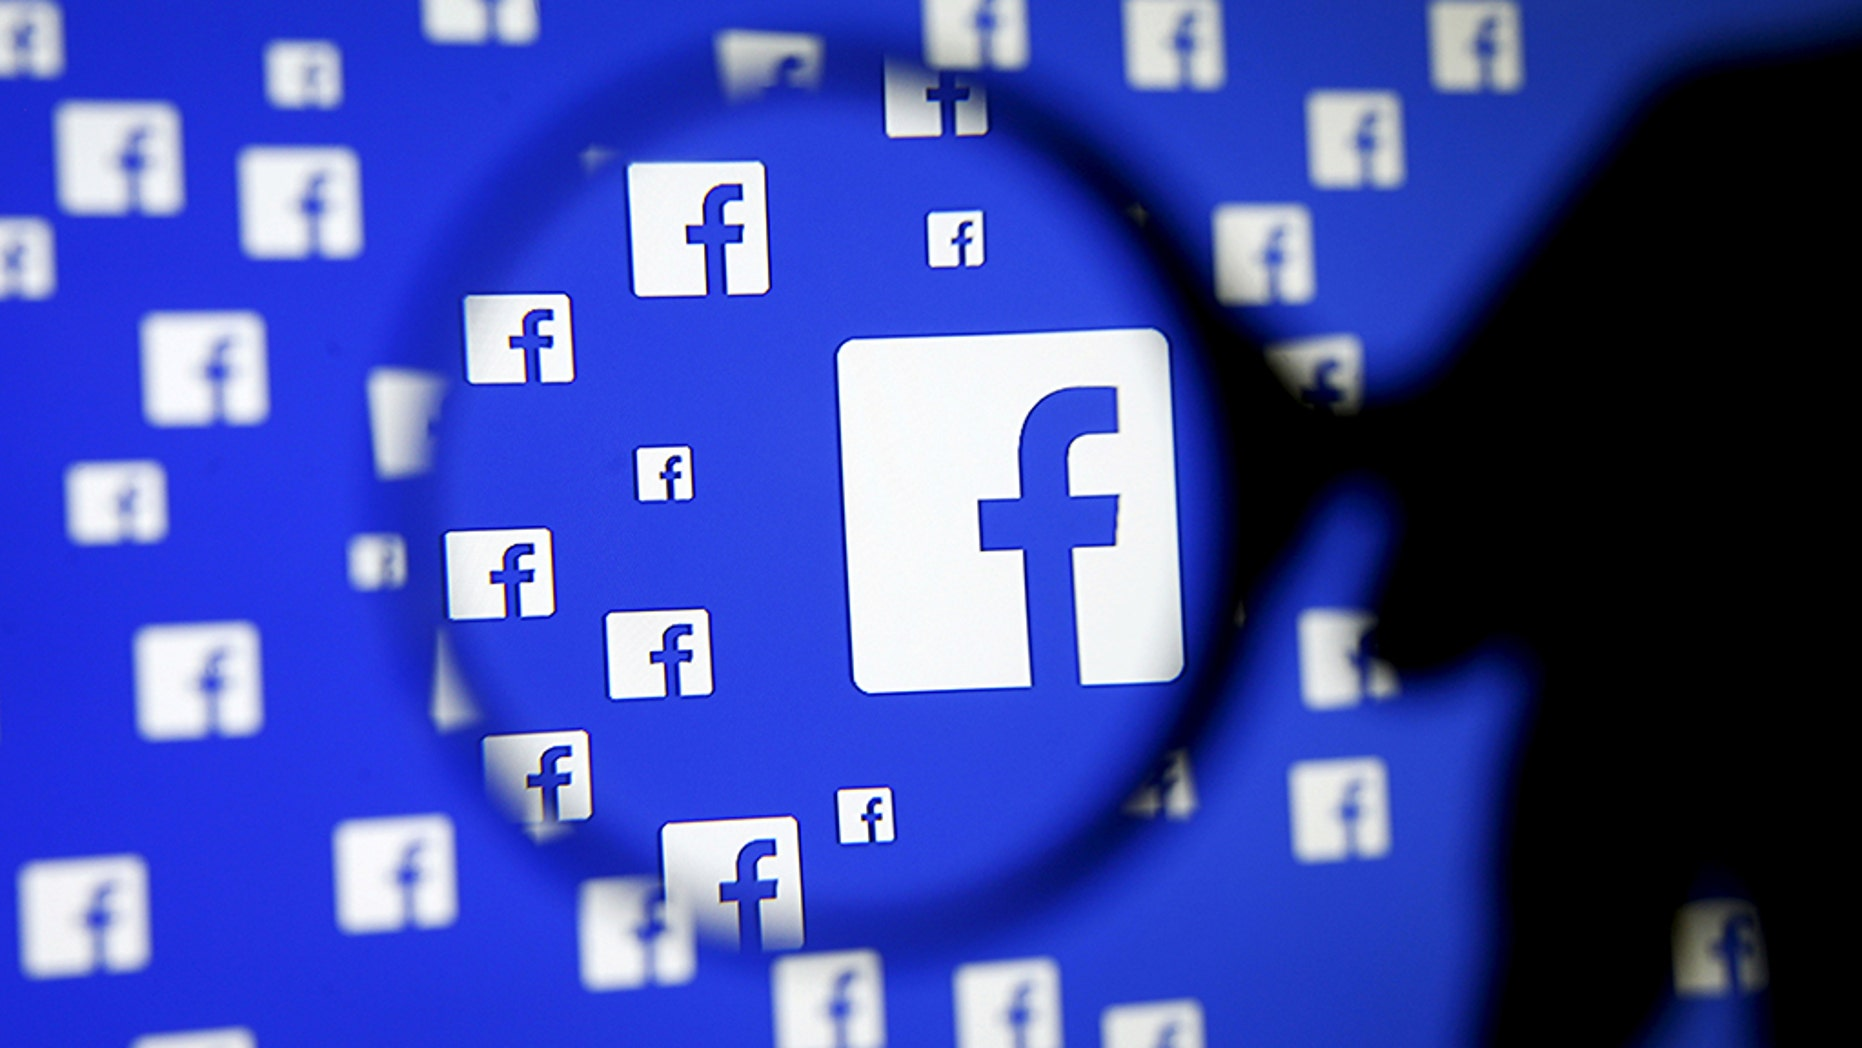 Facebook is shedding some light on its notoriously secretive algorithms.